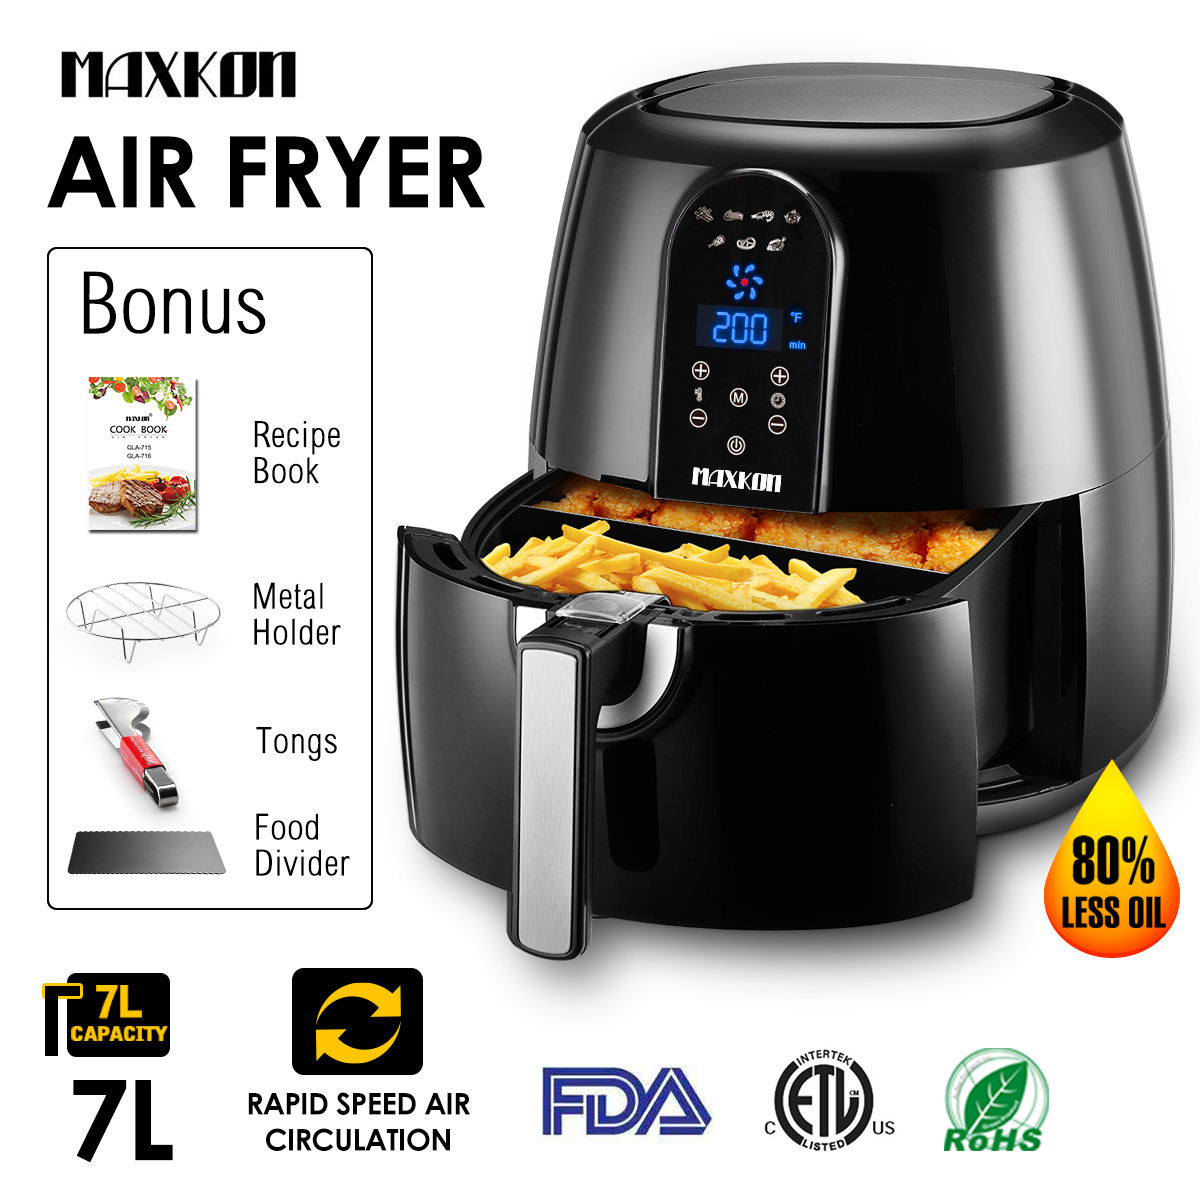 Maxkon XL Air Fryer 7-in-1 Electric 1800W, 5.8 Qt Basket Capacity, LCD Touch Screen Timer & Temperature Control,80% Oil Less, Includes Tongs, Metal Holder, Food divider and Recipe Book, Black & White